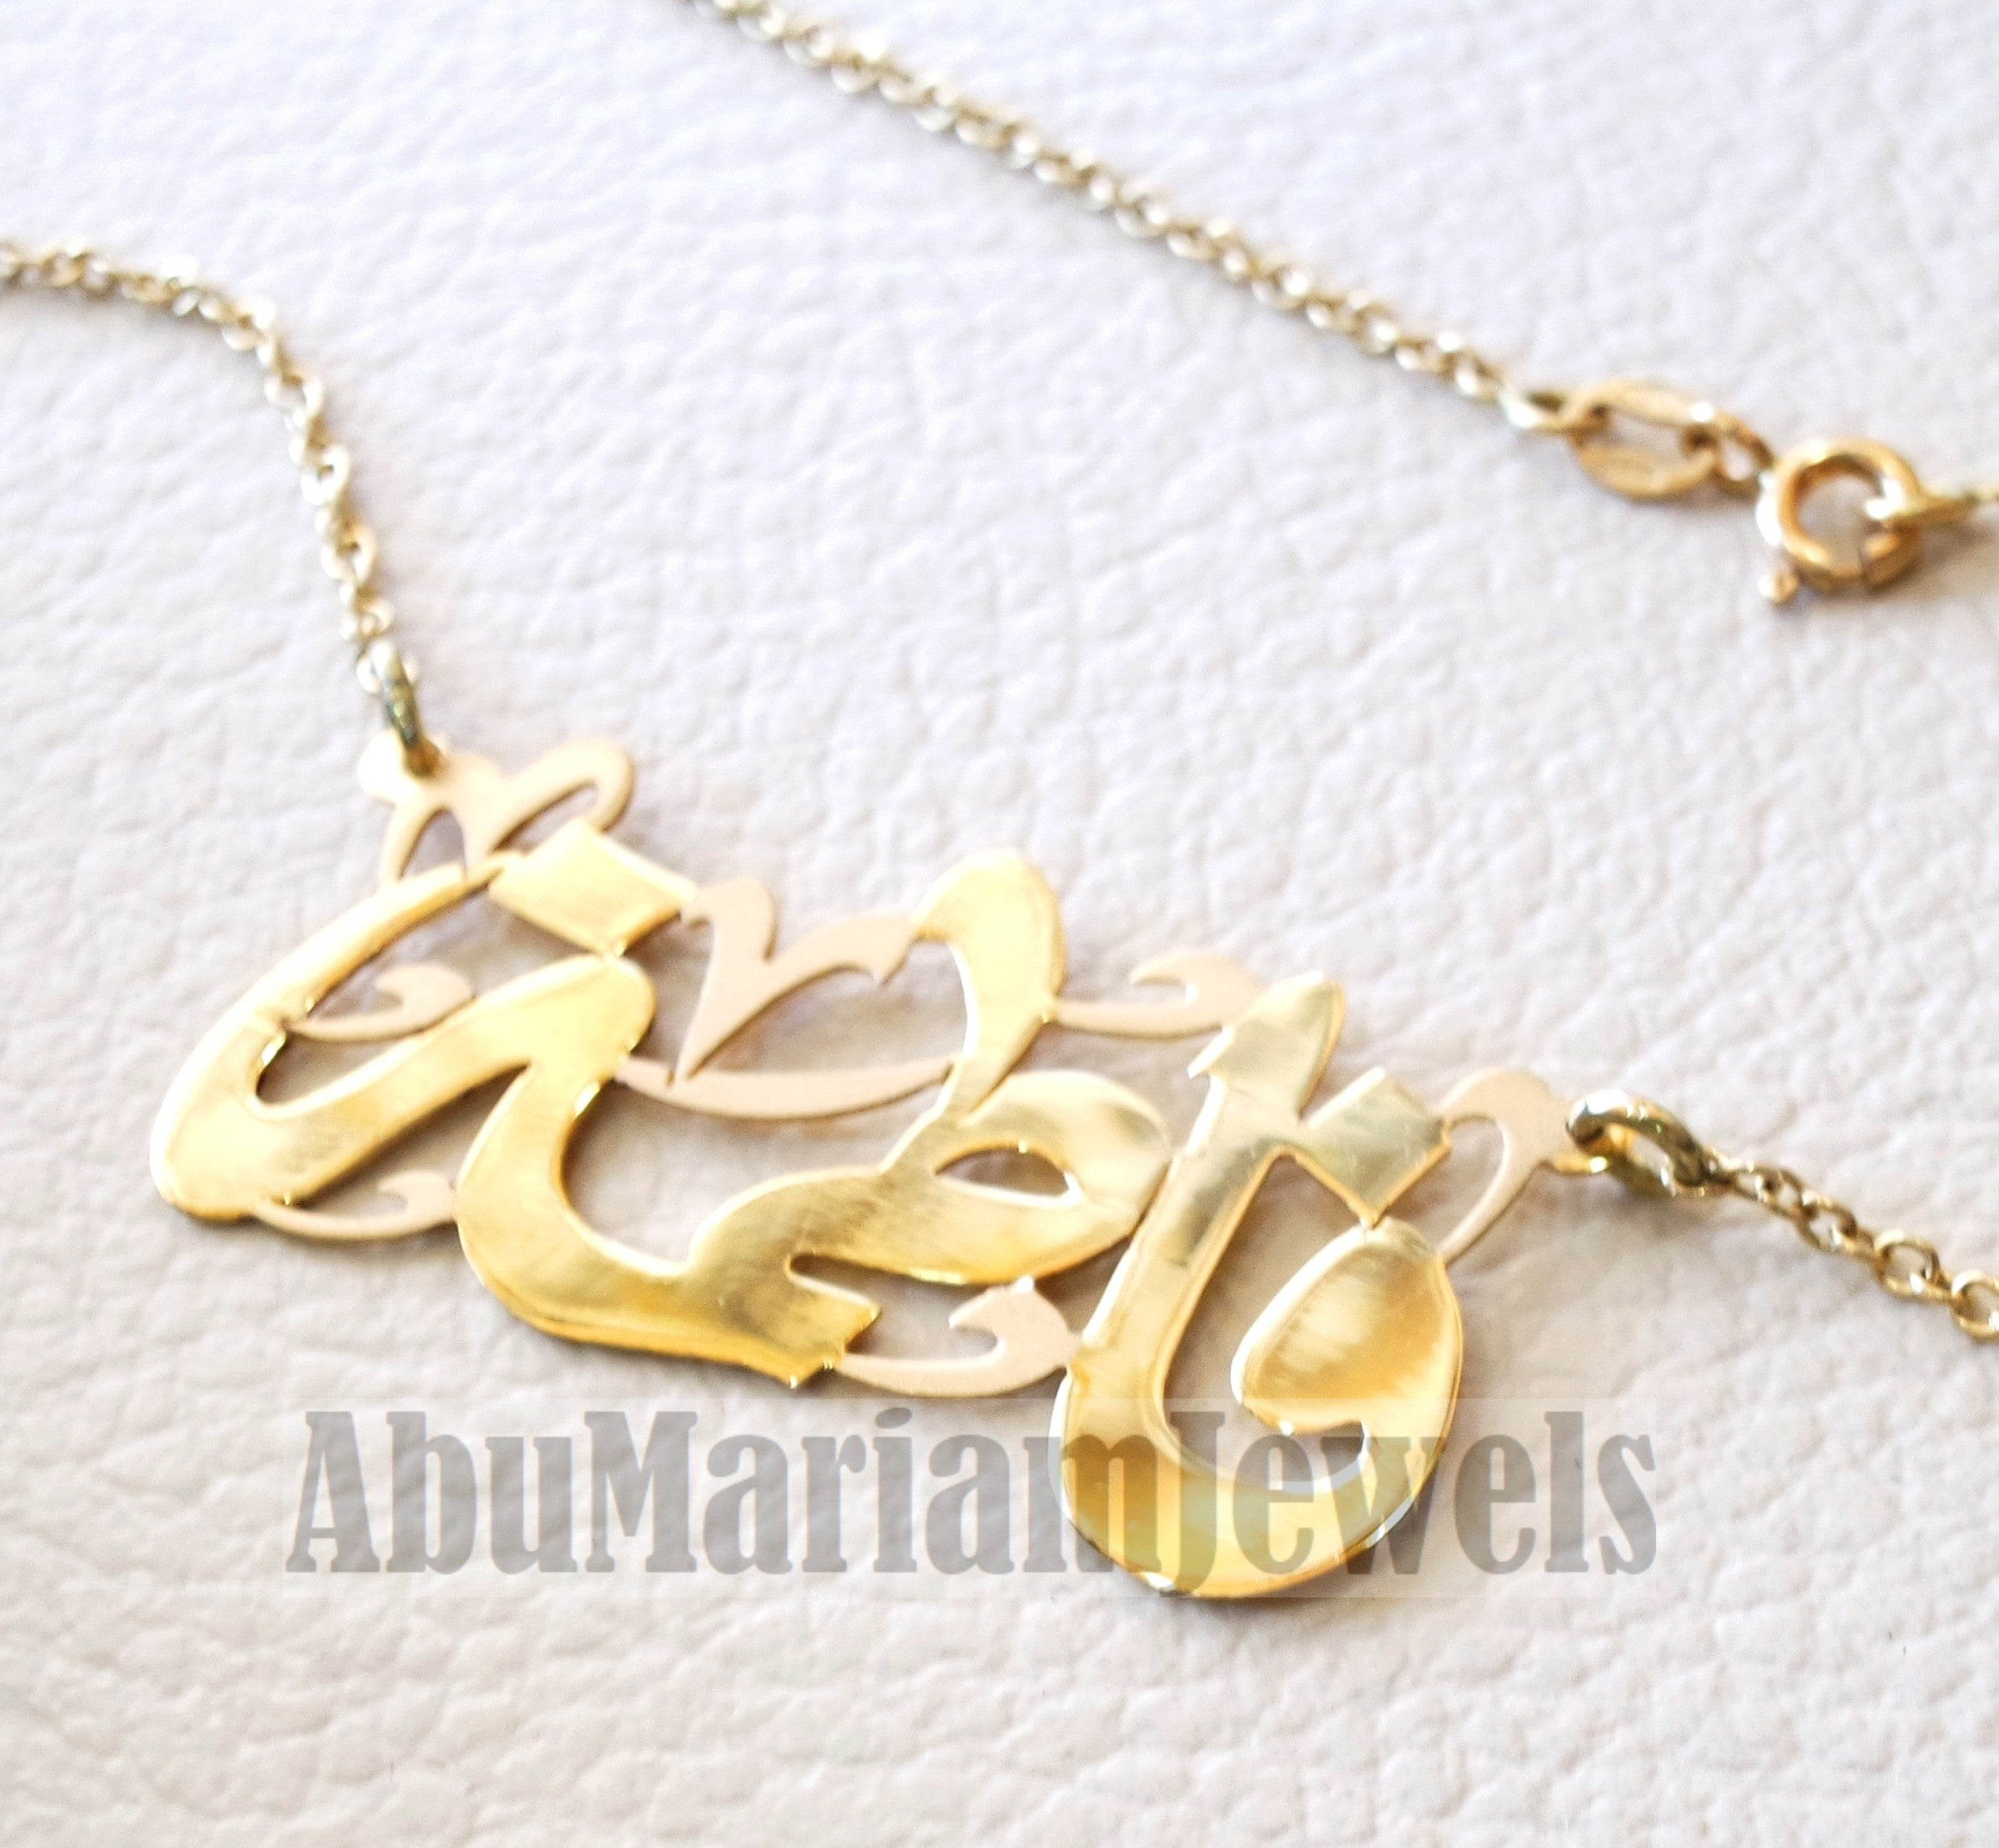 personalized customized 1 name 18 k gold arabic calligraphy pendant with chain standard , pear , rectangular or any shape fine jewelry N1007